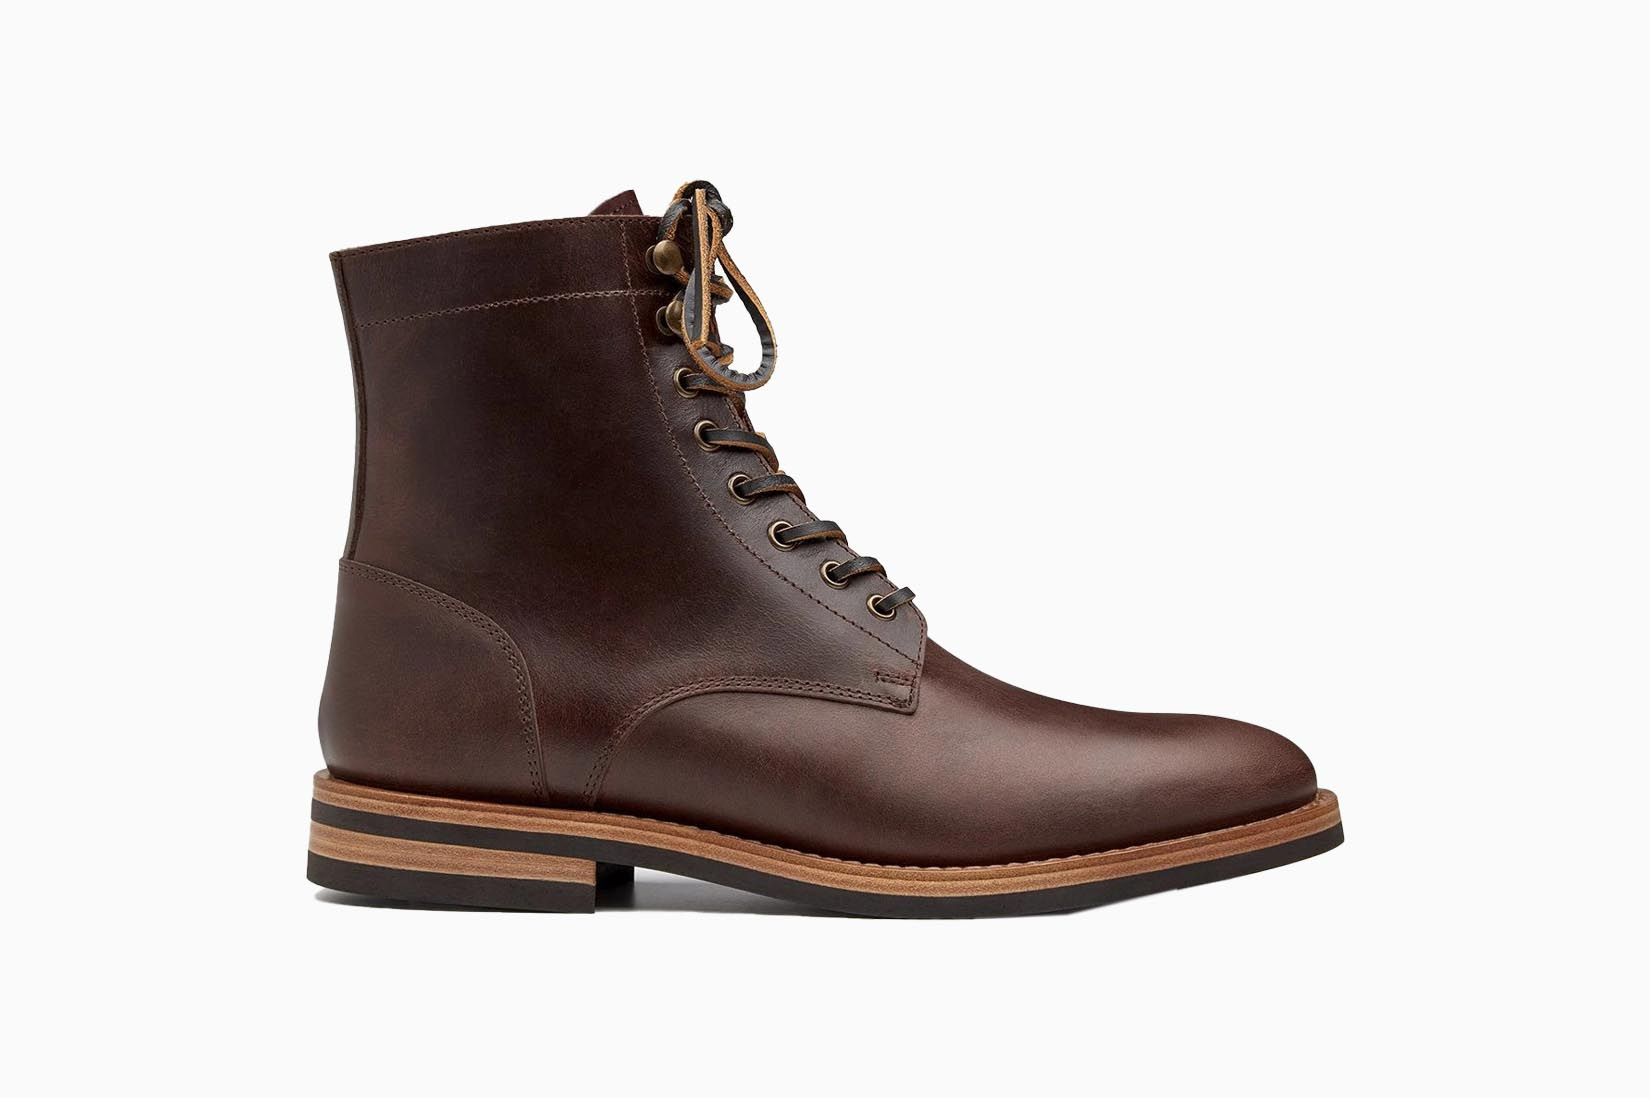 best boots men oliver cabell wilson boots review Luxe Digital